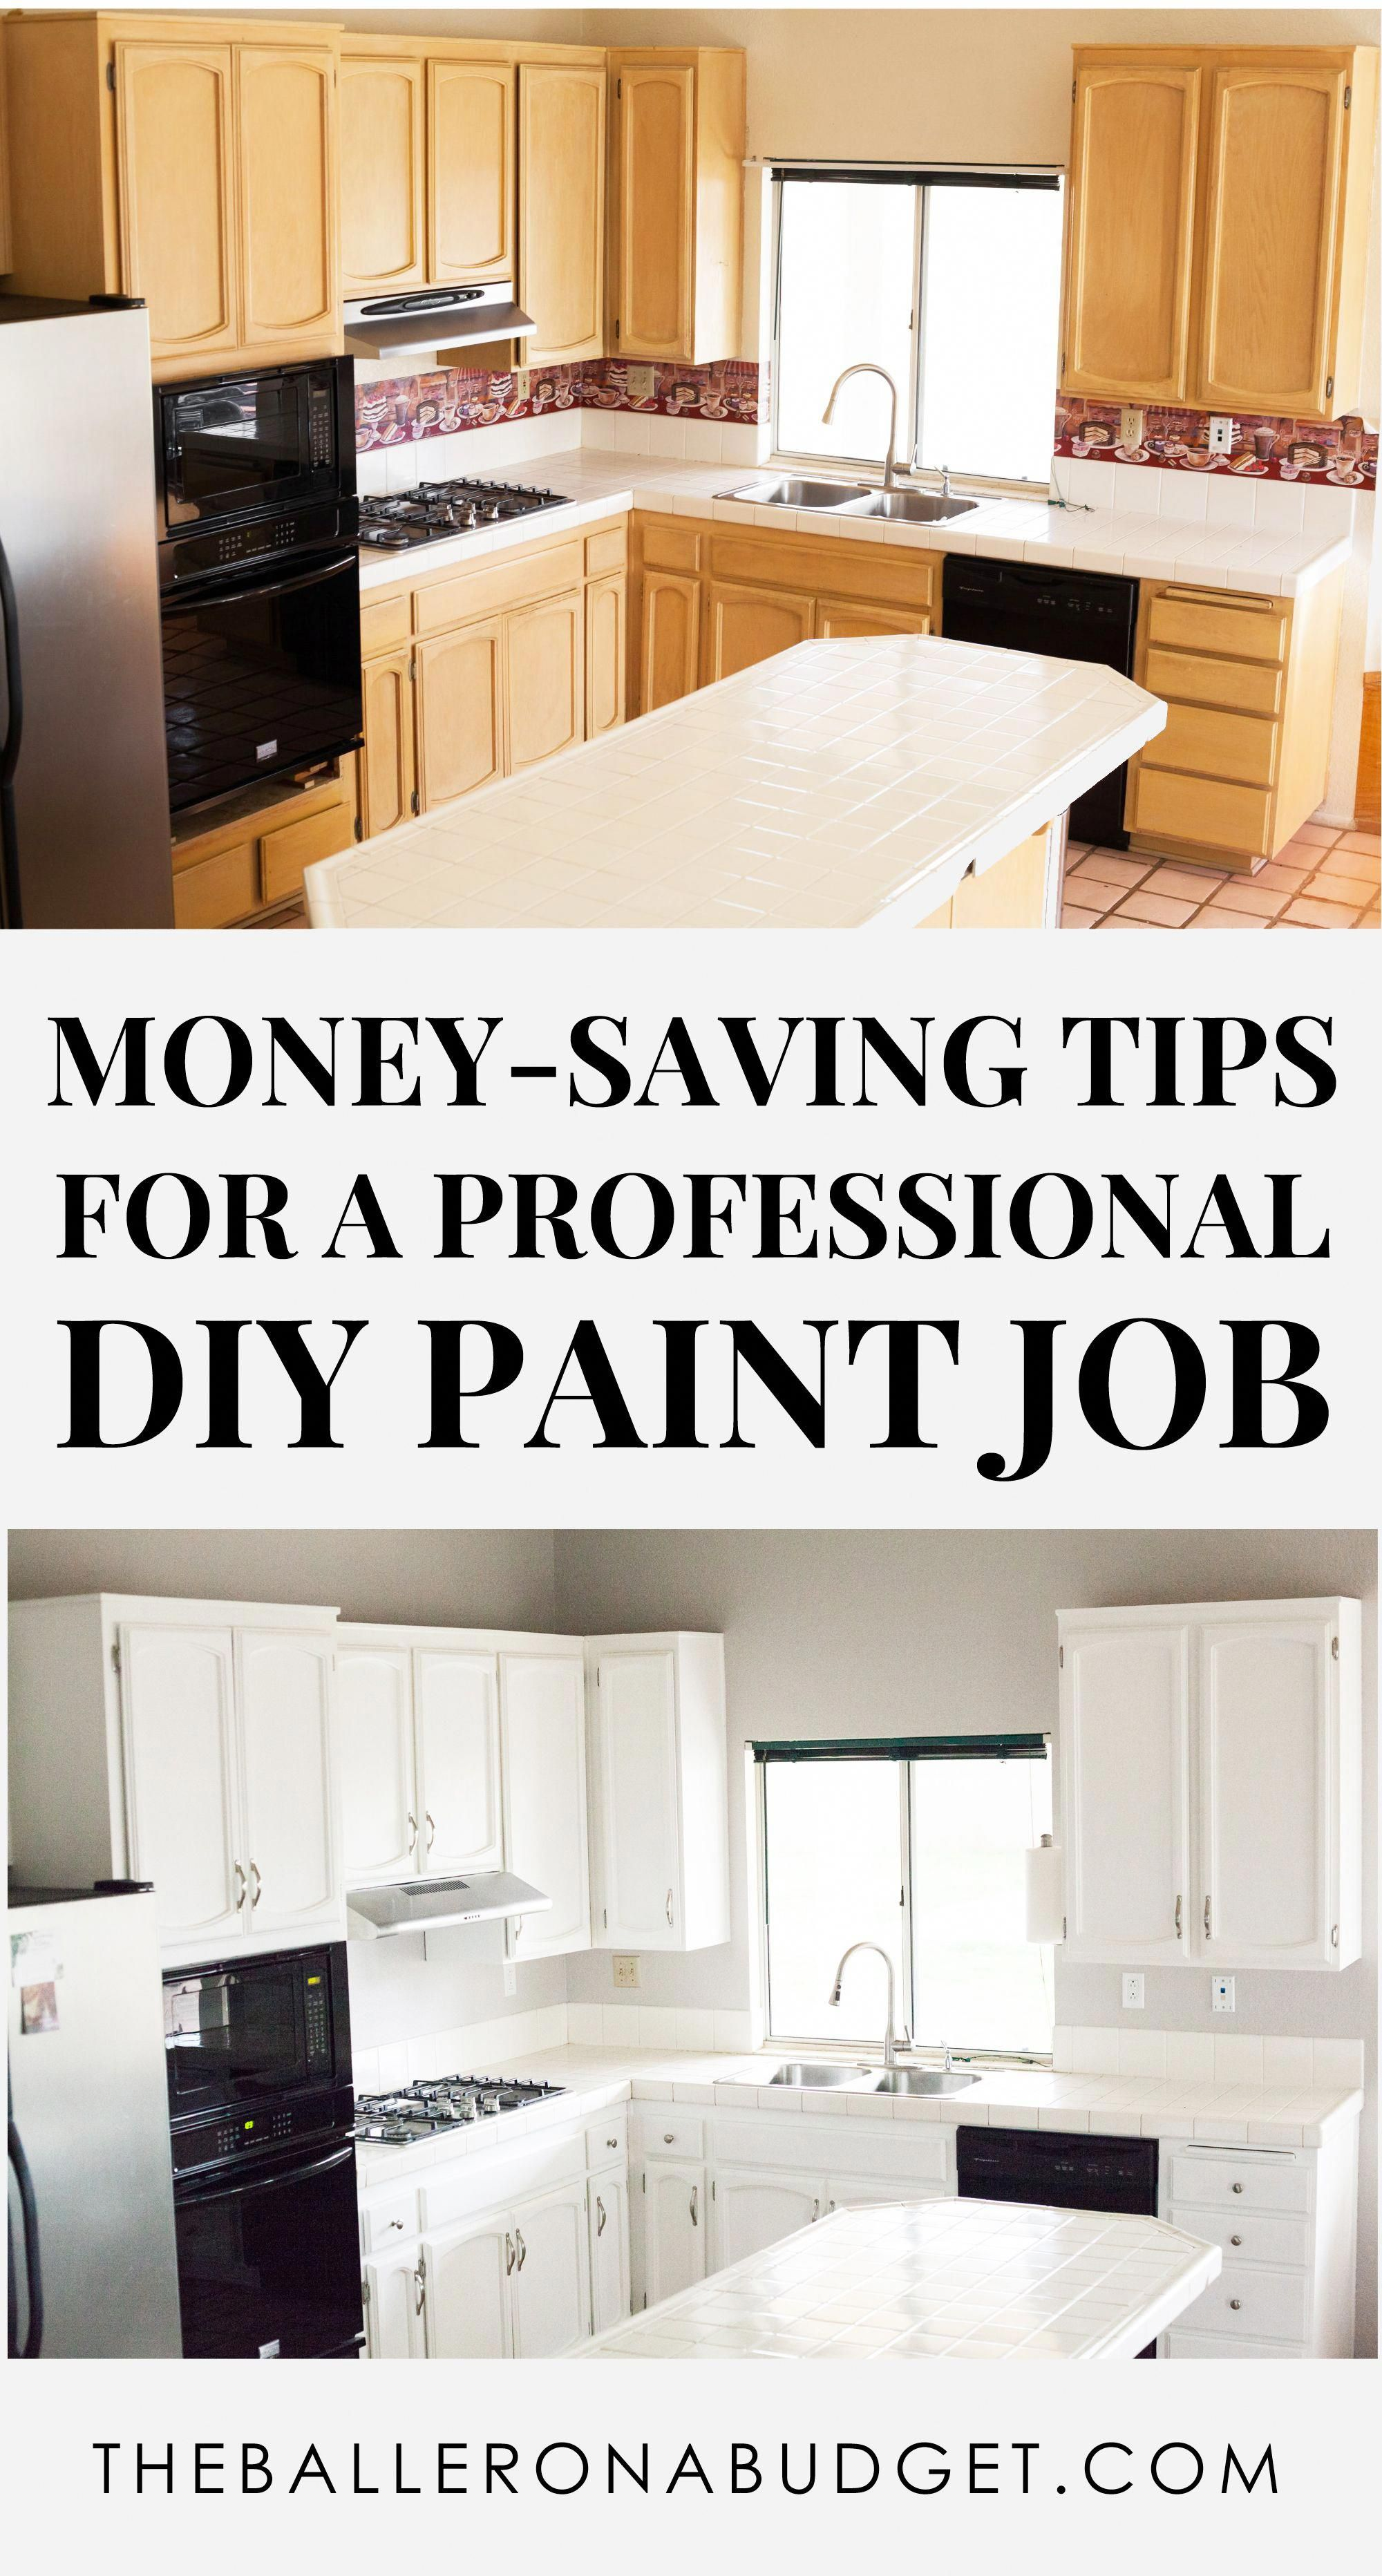 Expensive or cheap paint for my walls? Hire painters or do ...